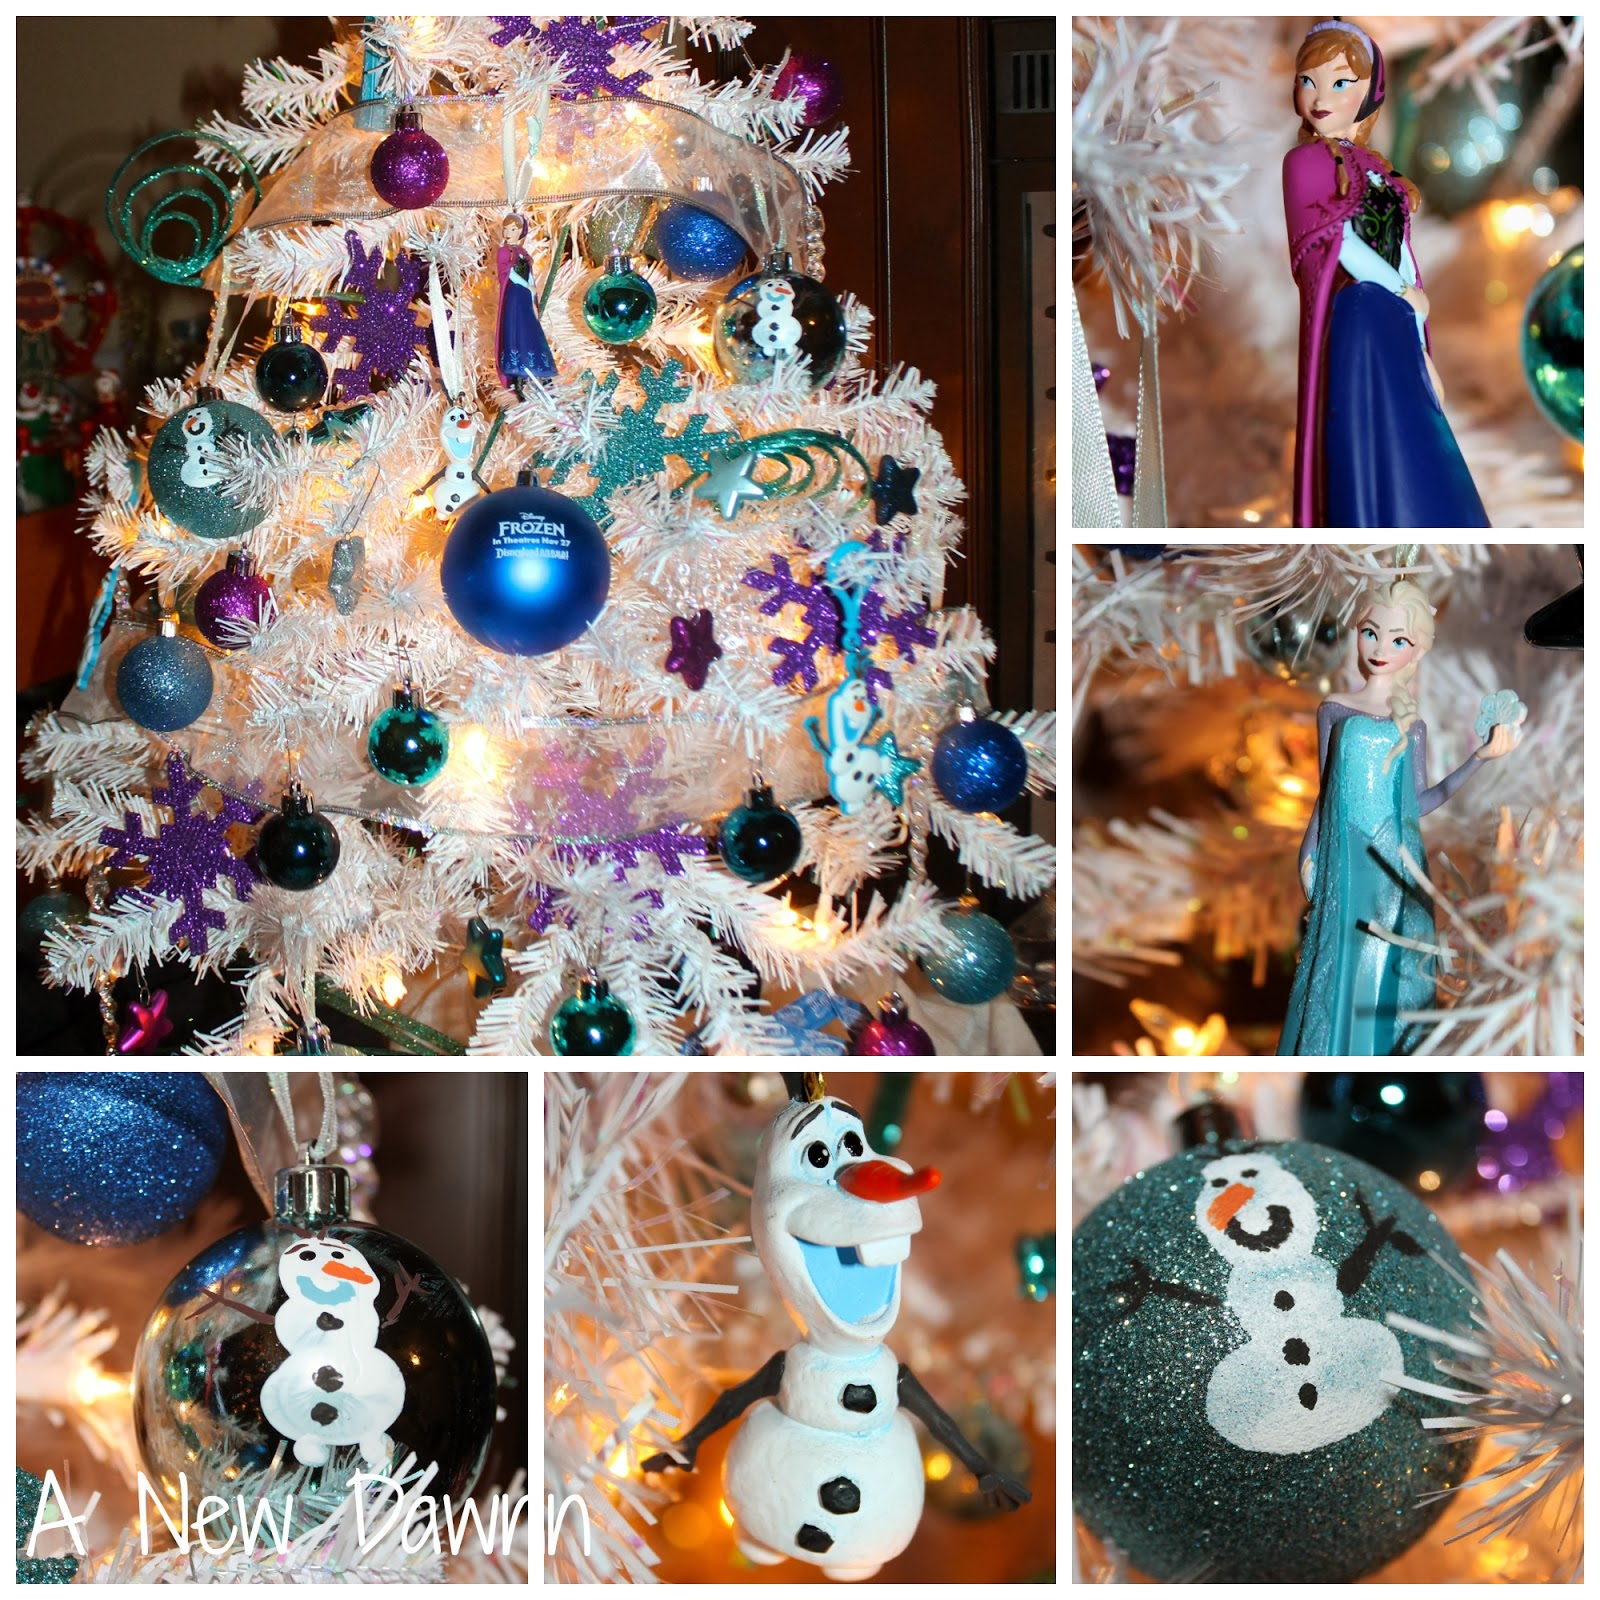 Disney Frozen Ornaments